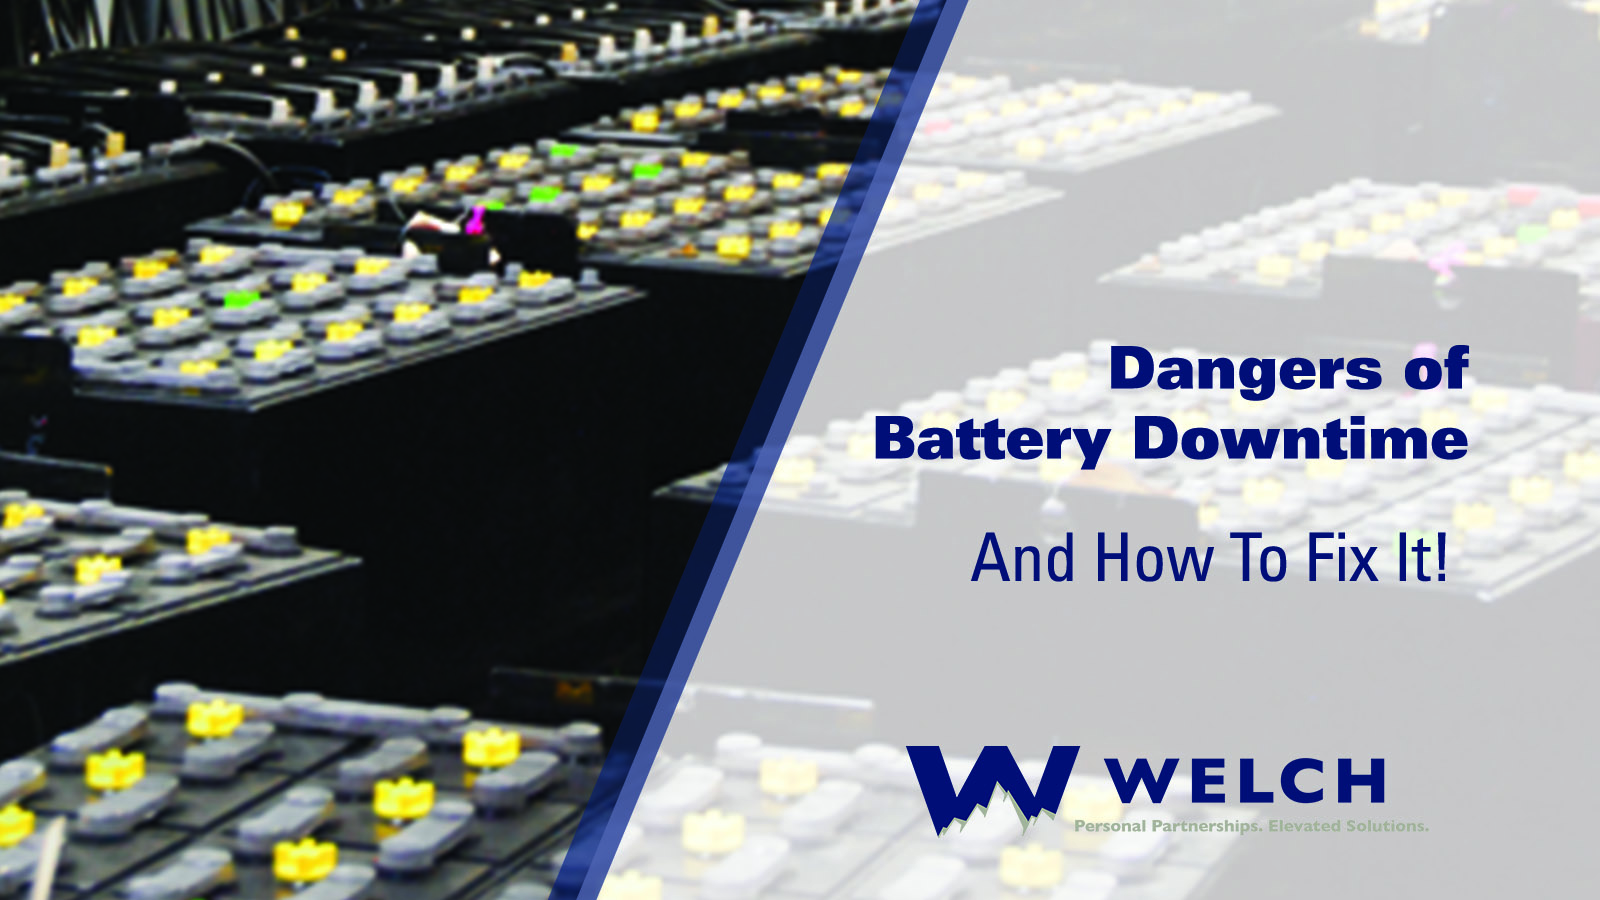 BatteryDowntime